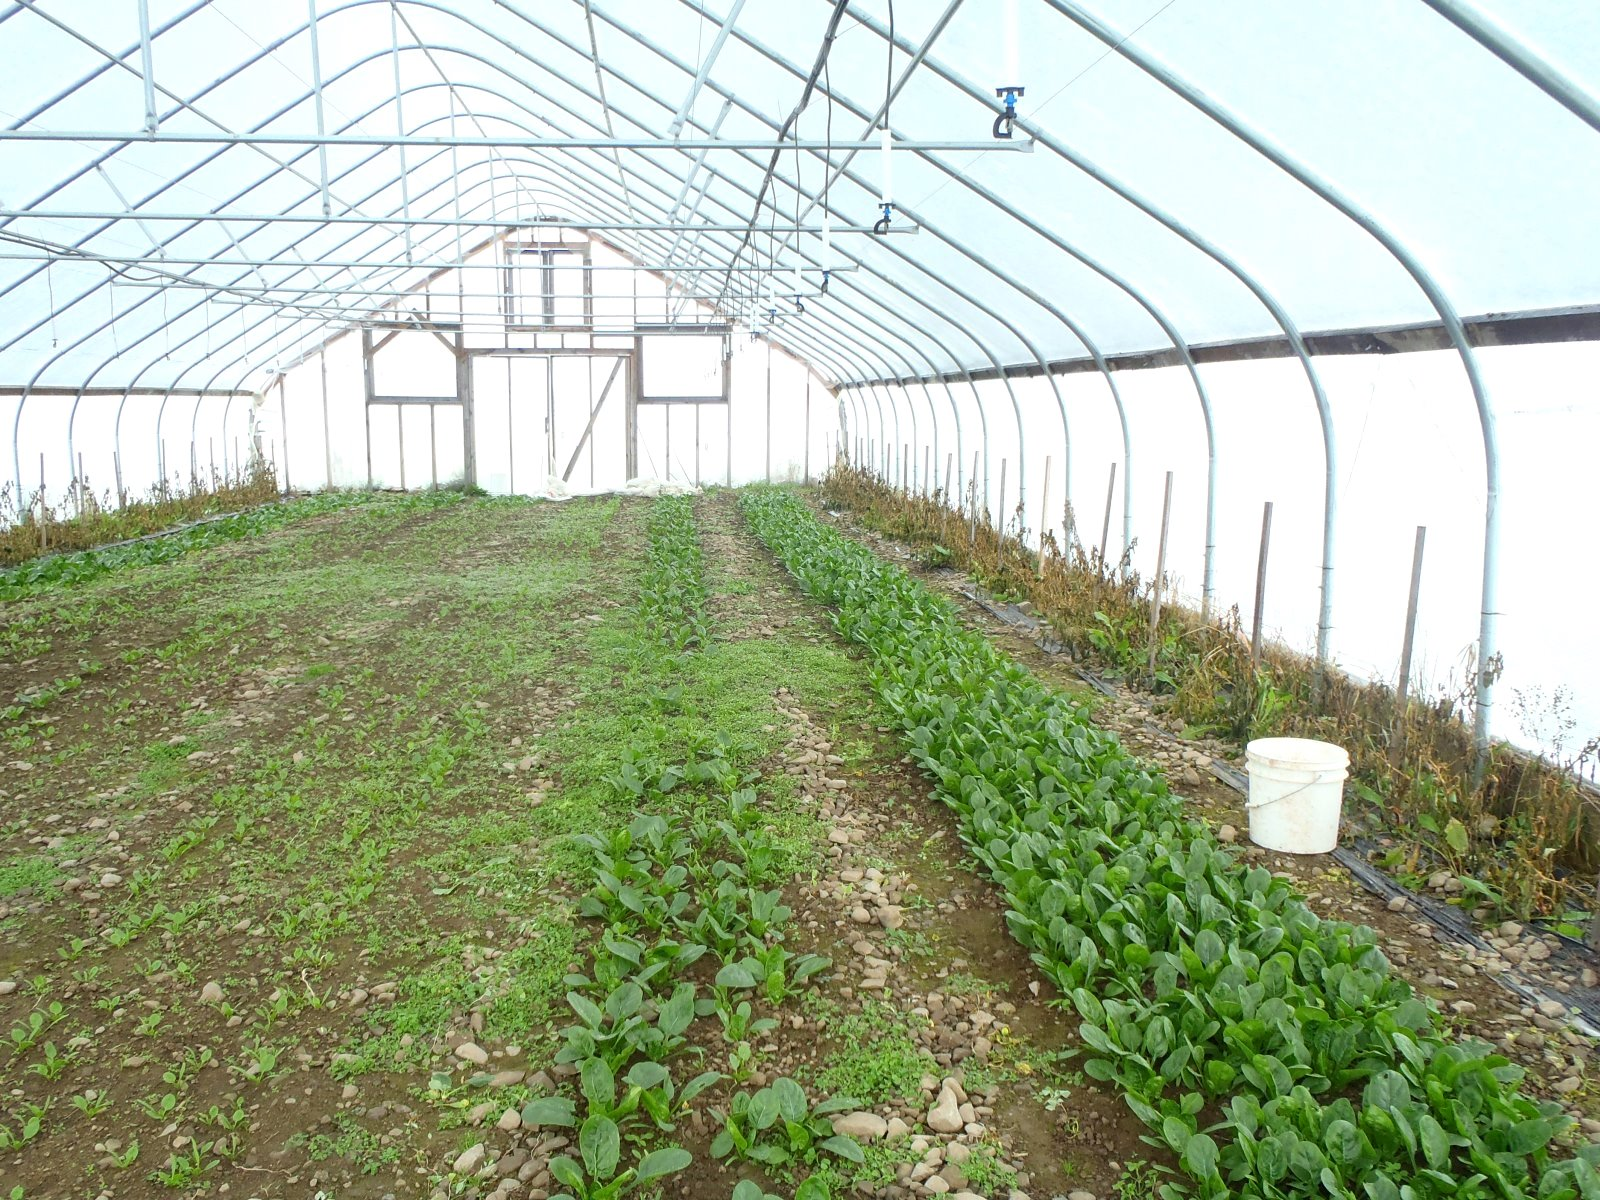 The seasonal high tunnel extends the growing season into the cooler months of the year